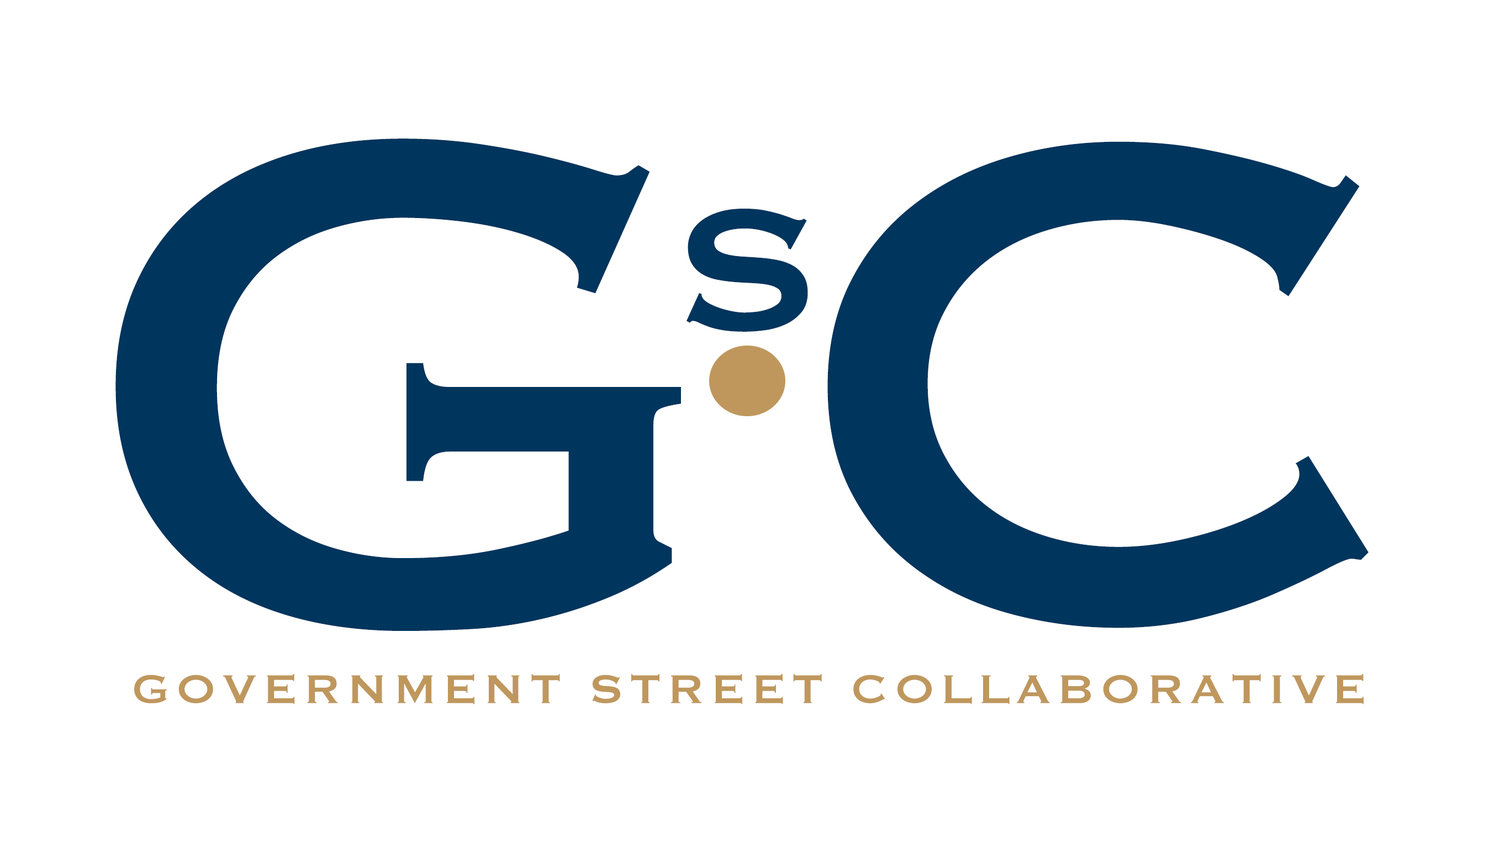 Government Street Collaborative